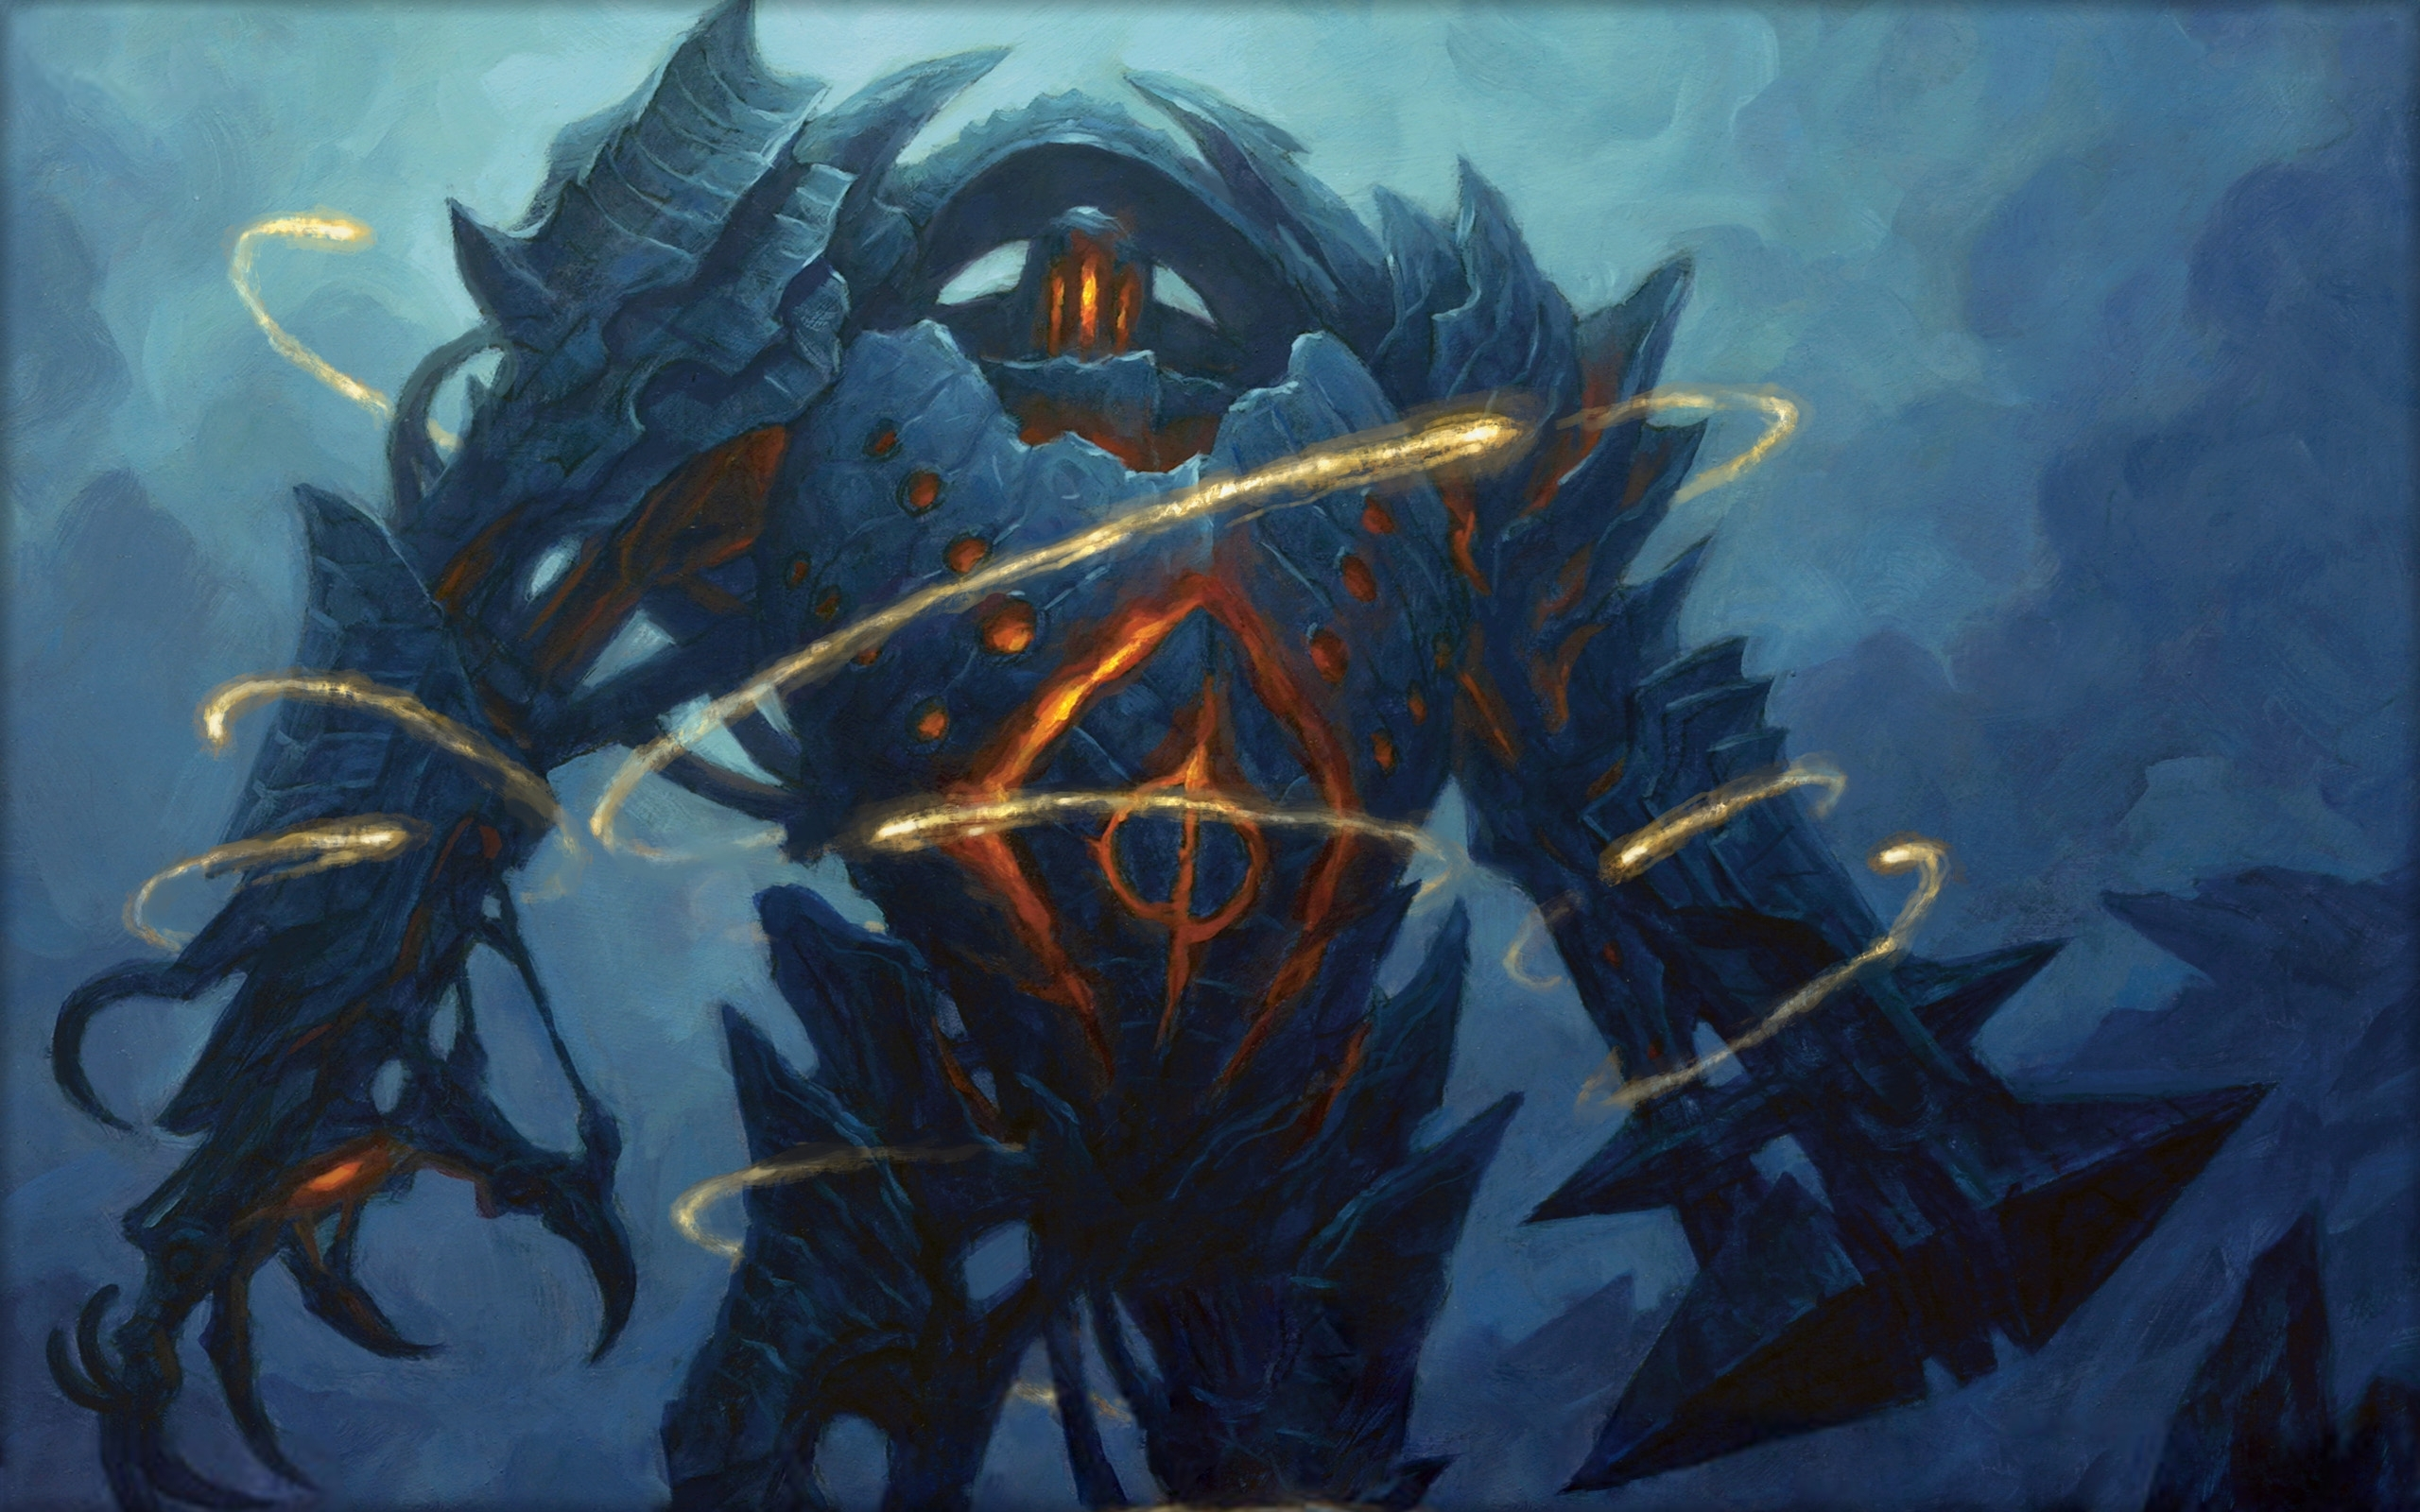 magic: the gathering full hd wallpaper and background image